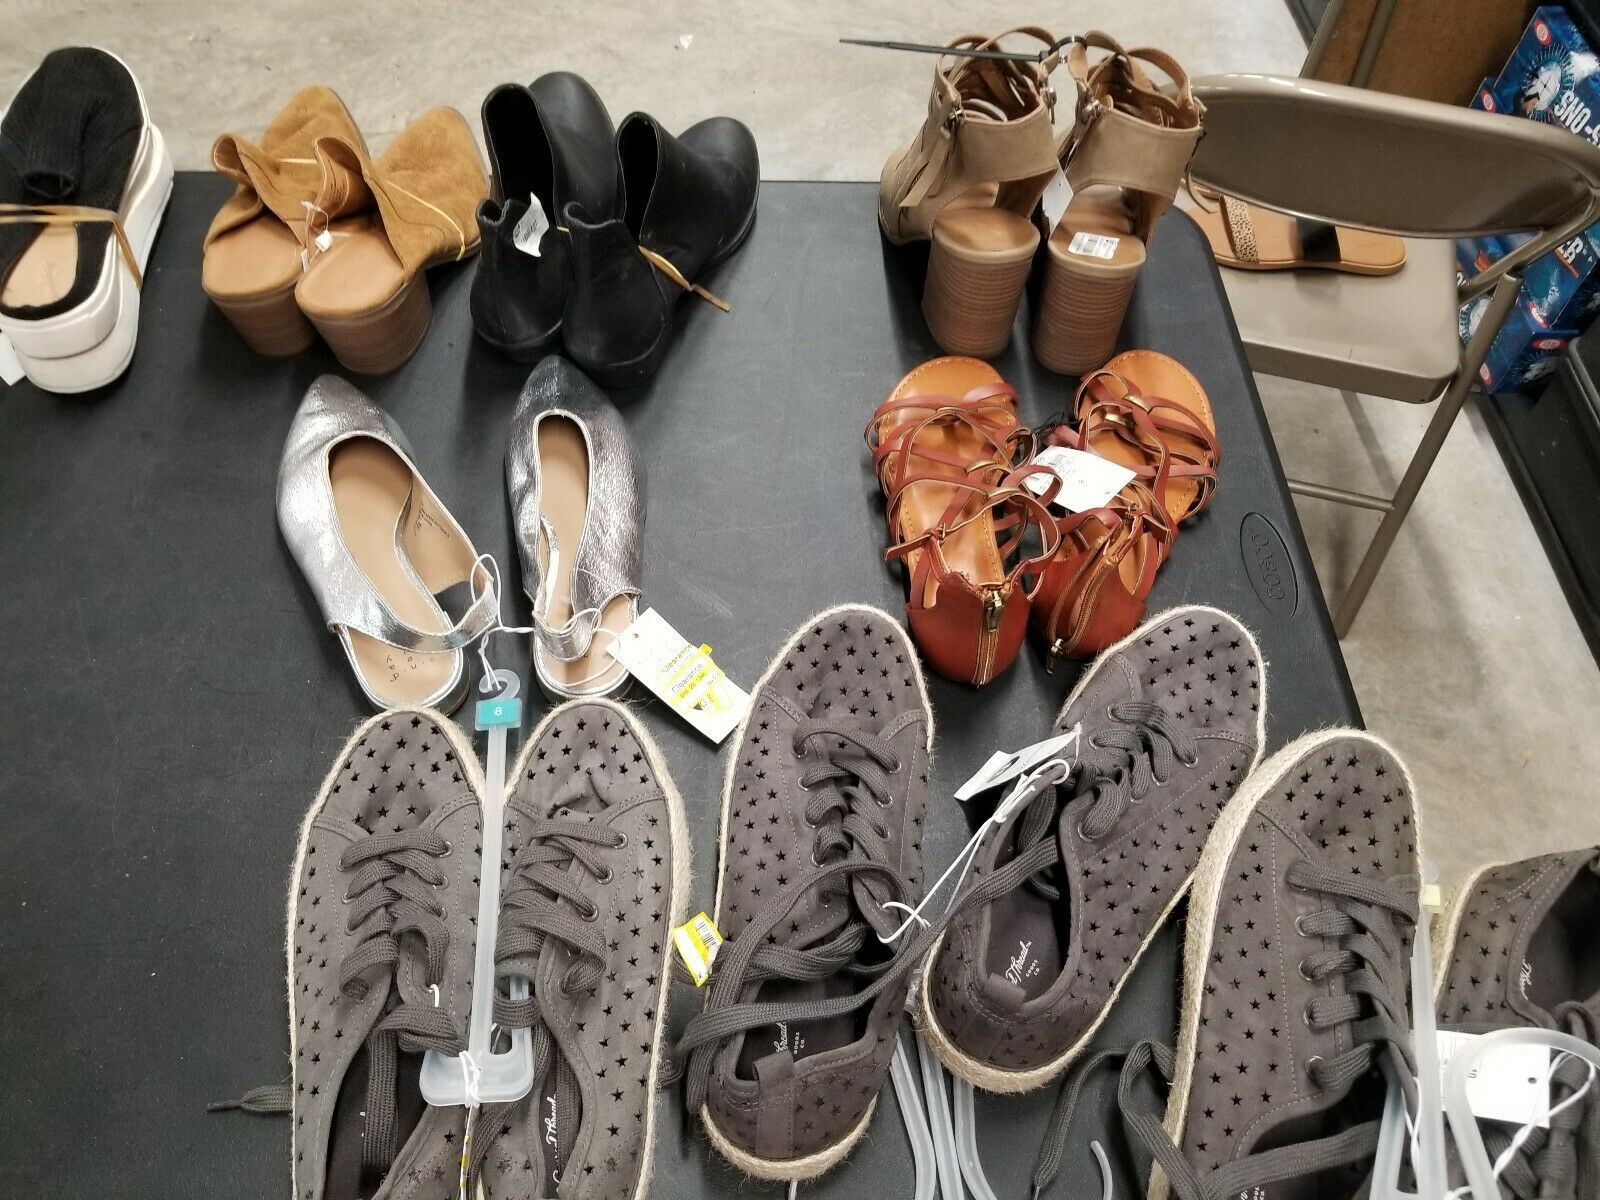 Re-seller Assorted Shoe Lot - 10 BRAND NEW Adult & Kids - Over $200.00 Retail